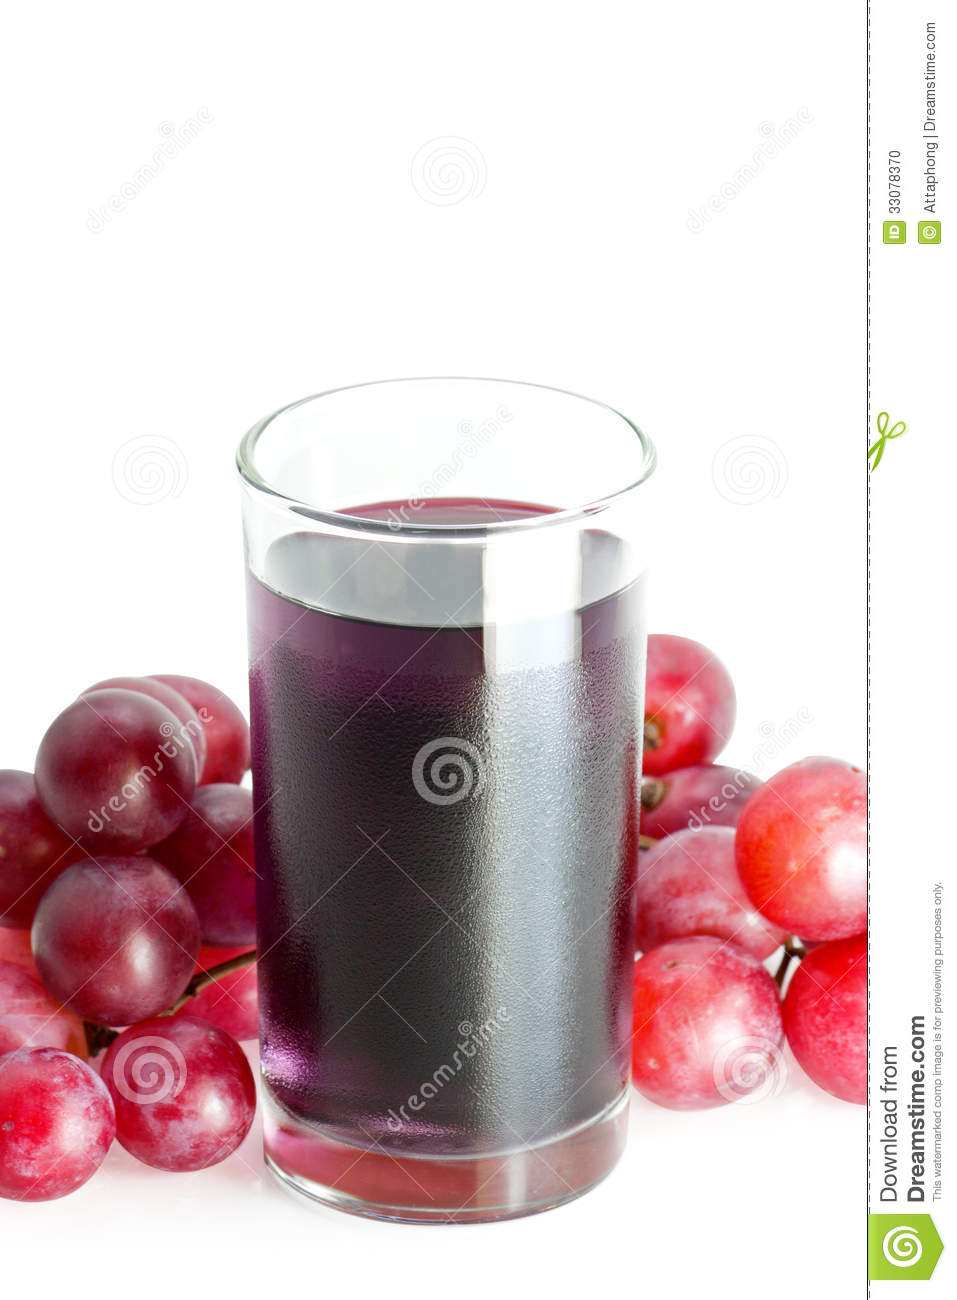 Glass Of Grape Juice Stock Photo - Image: 33078370